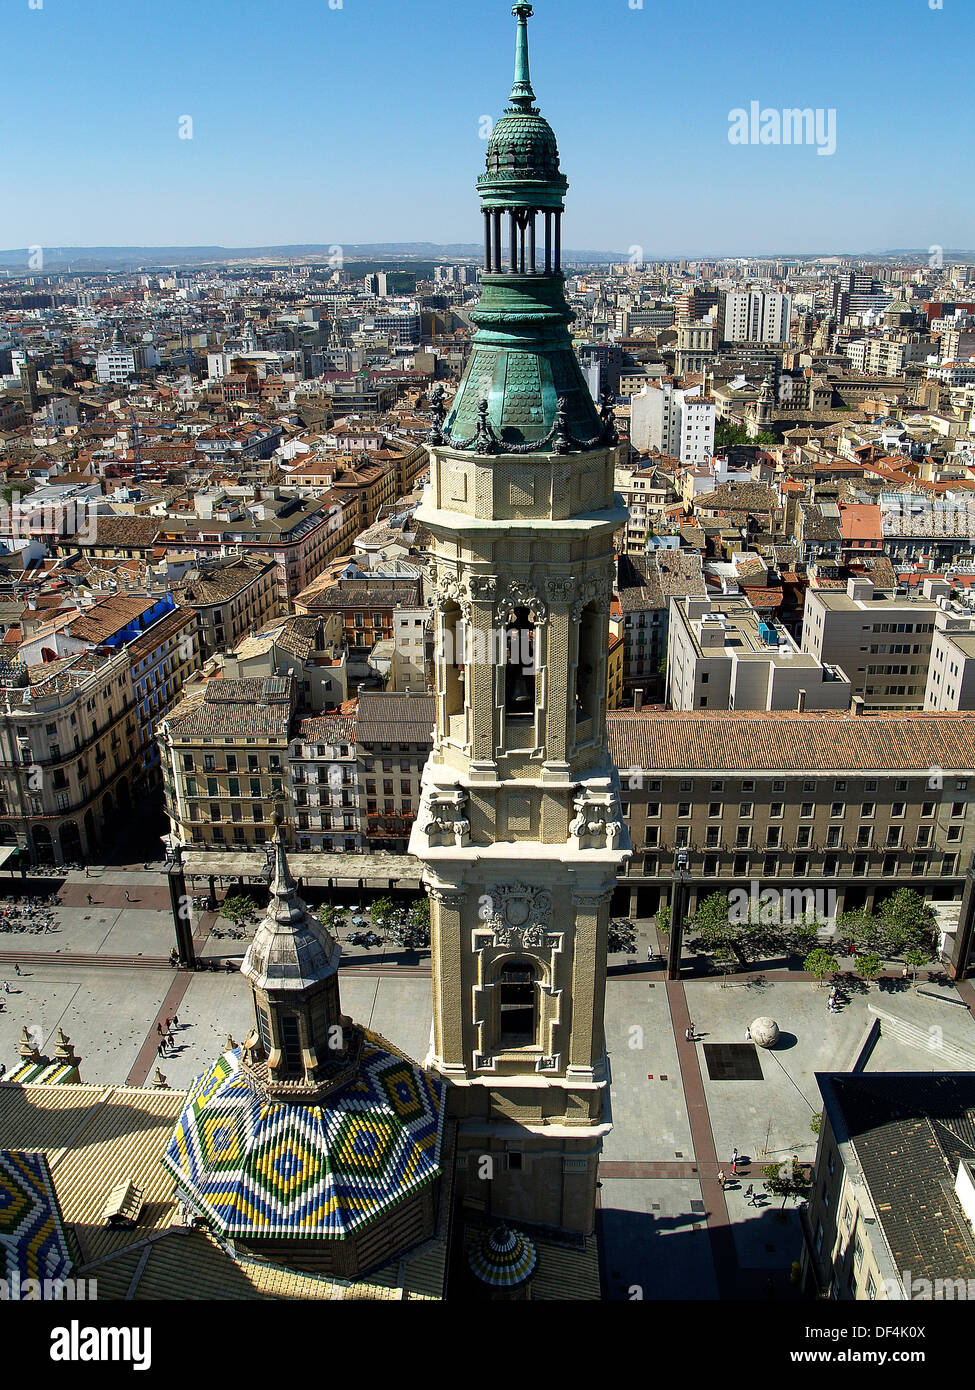 Cupola and tower from the top of Basilica of Our Lady of The Pillar,Zaragoza,Spain - Stock Image